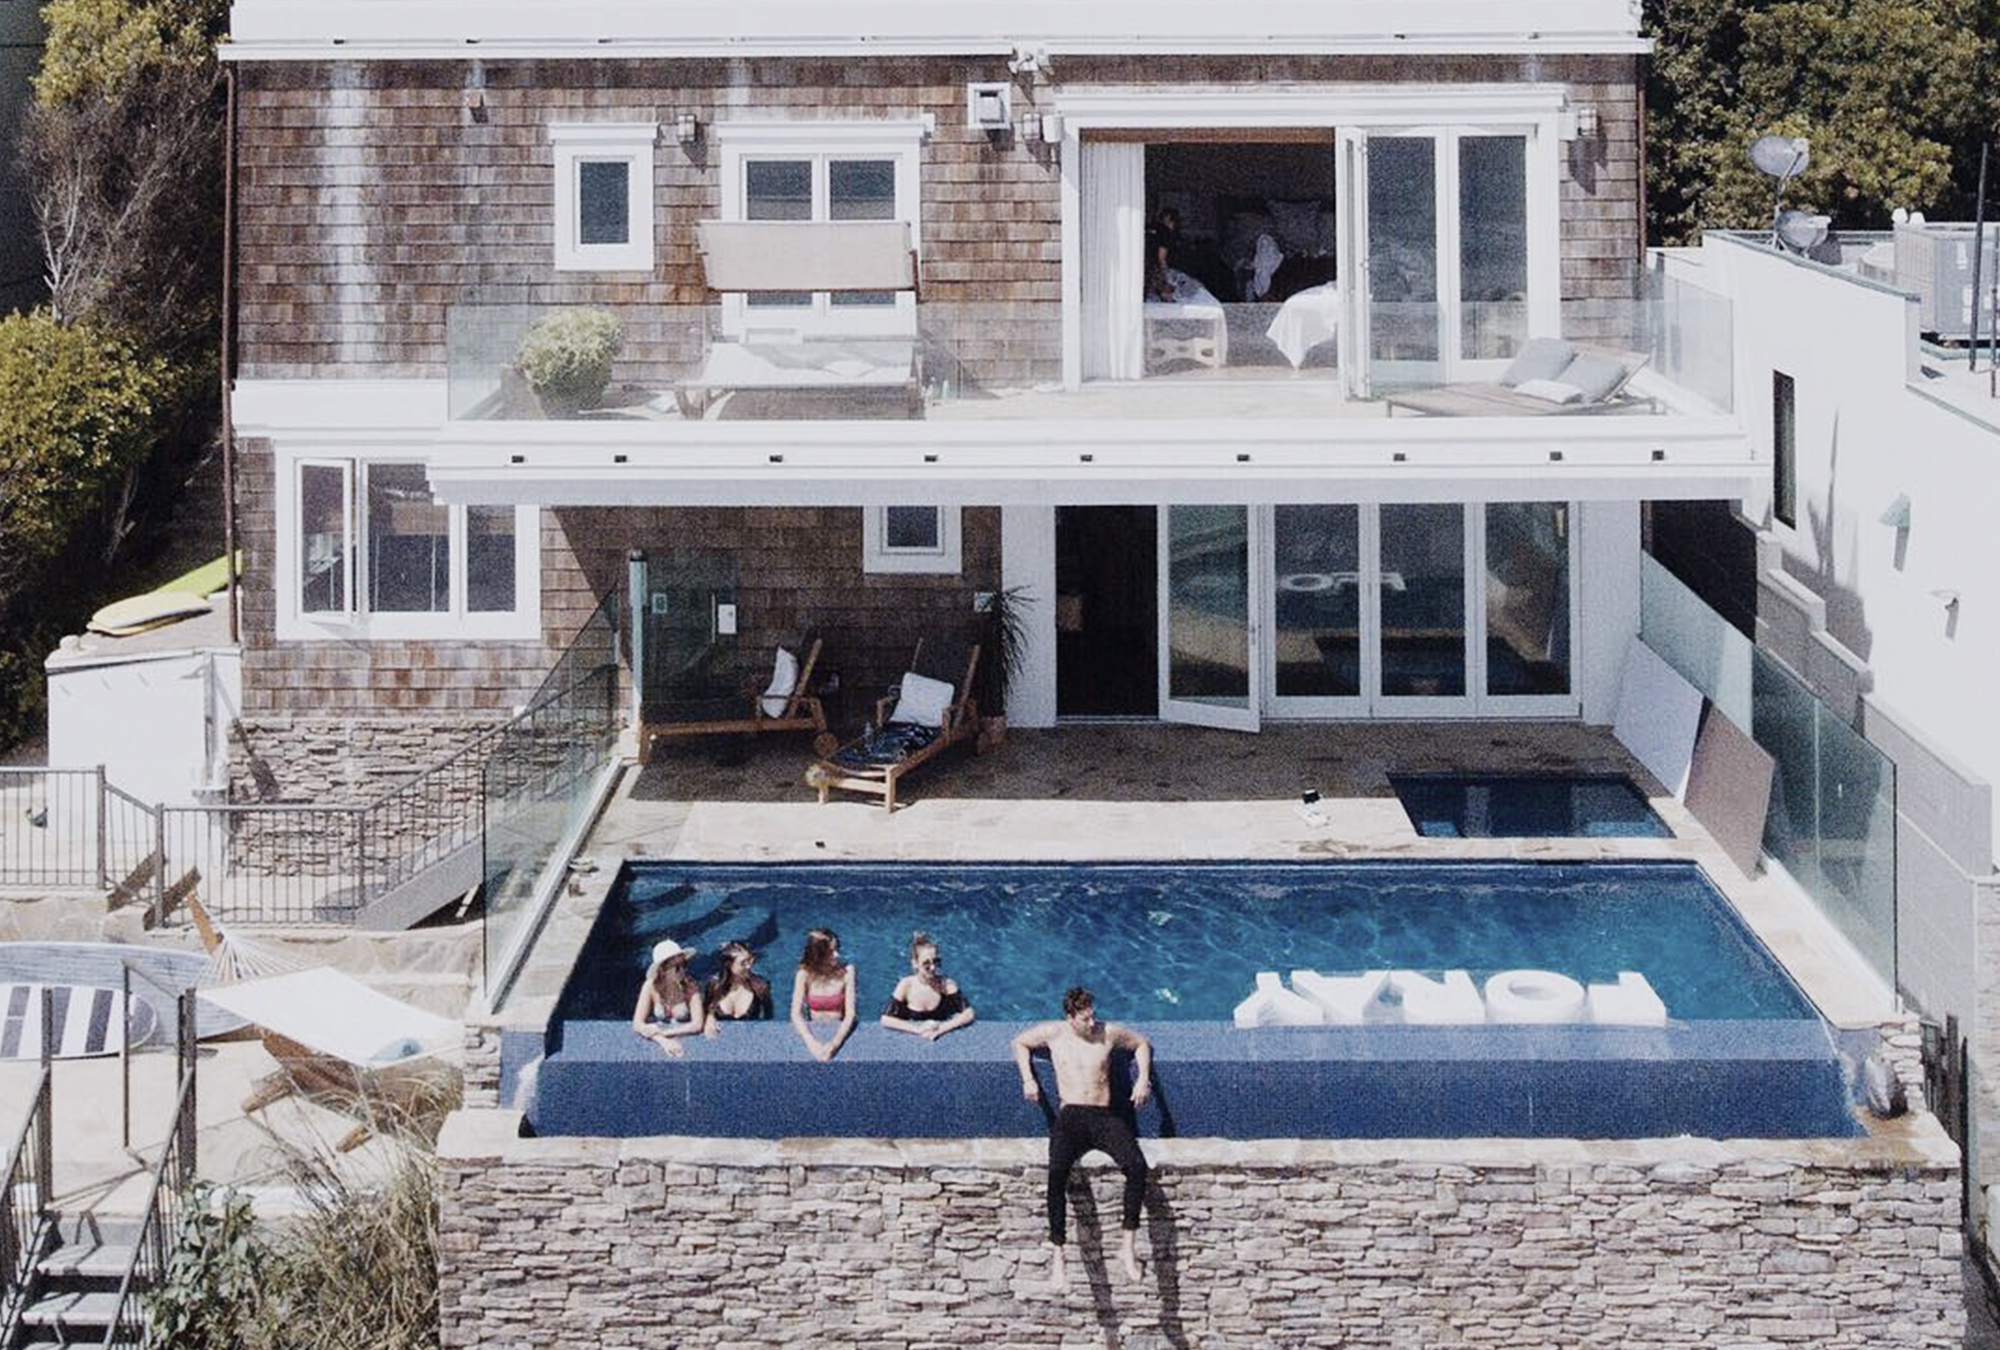 Proprietary Entity: Malibu Beach House